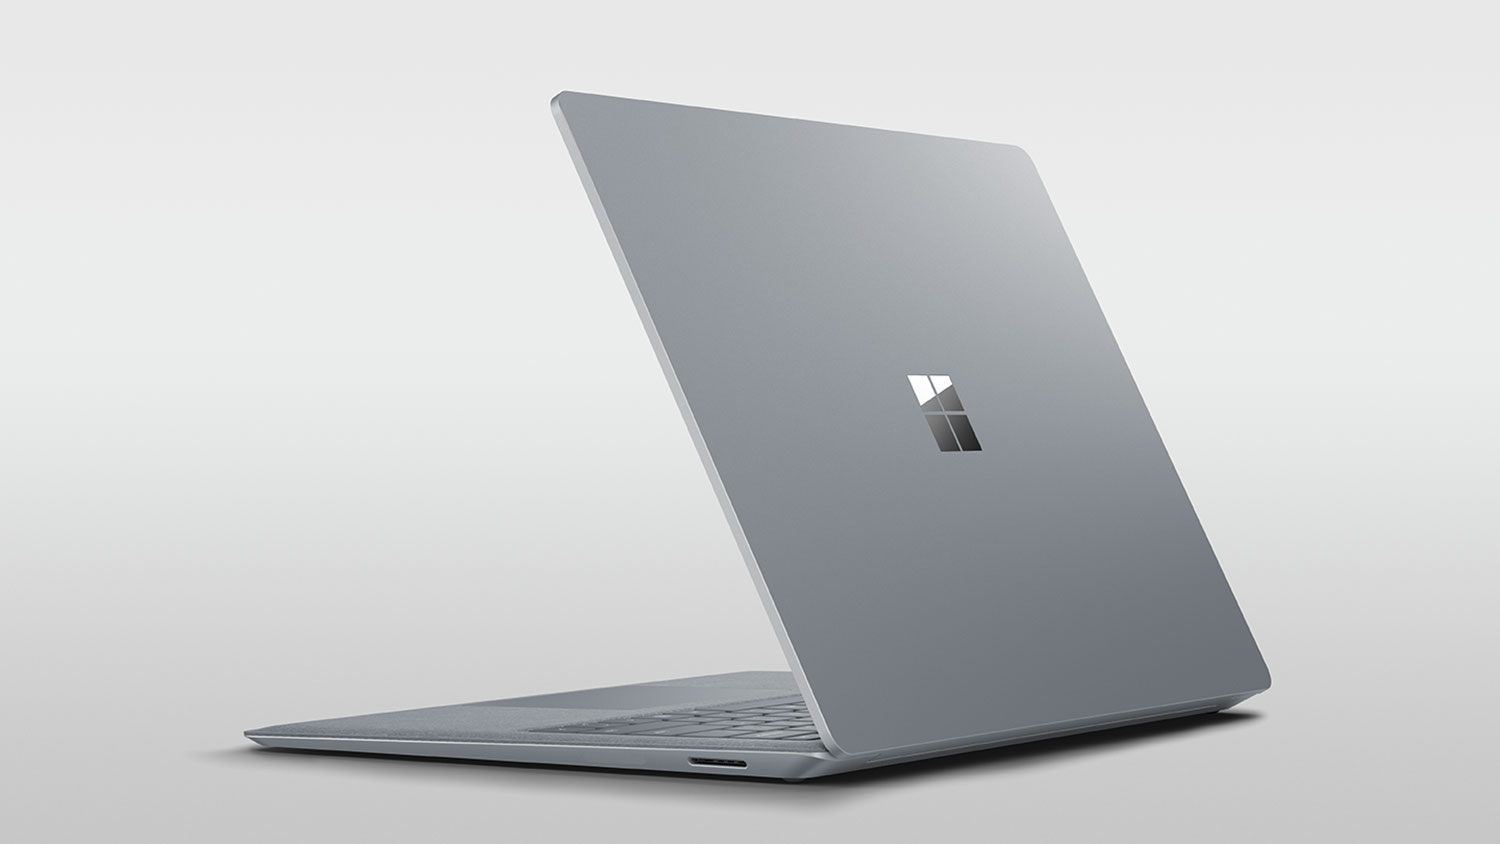 Microsoft Surface Laptop is now available in Singapore